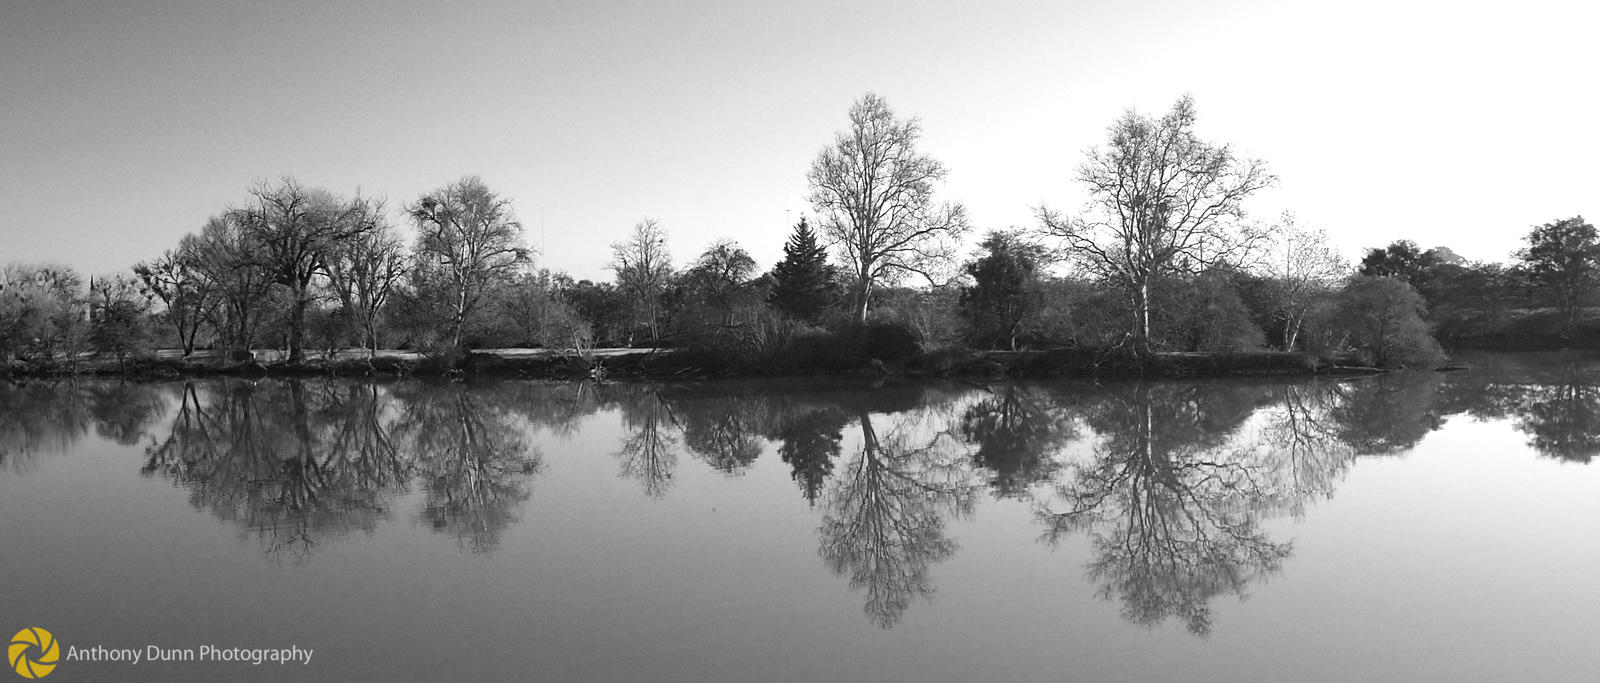 Trees on the River bank #2